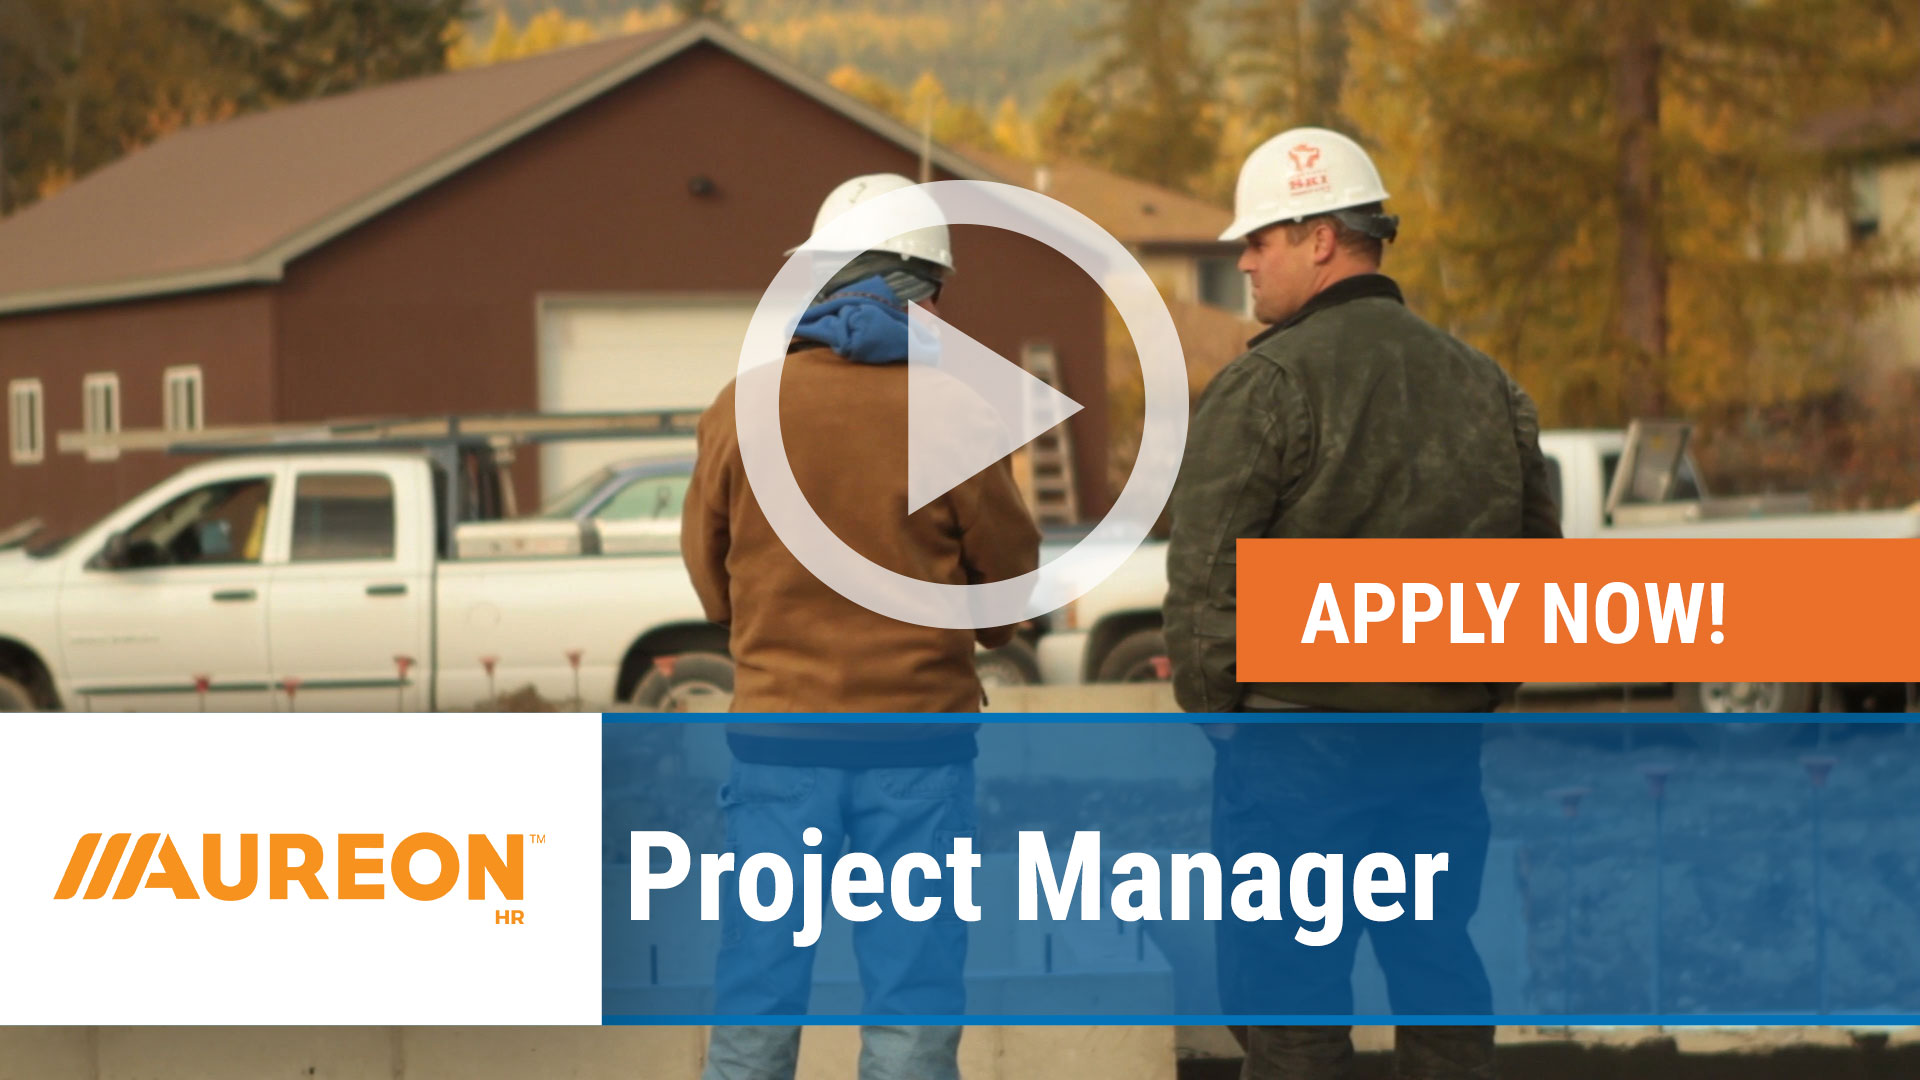 Watch our careers video for available job opening Project Manager in Des Moines, IA